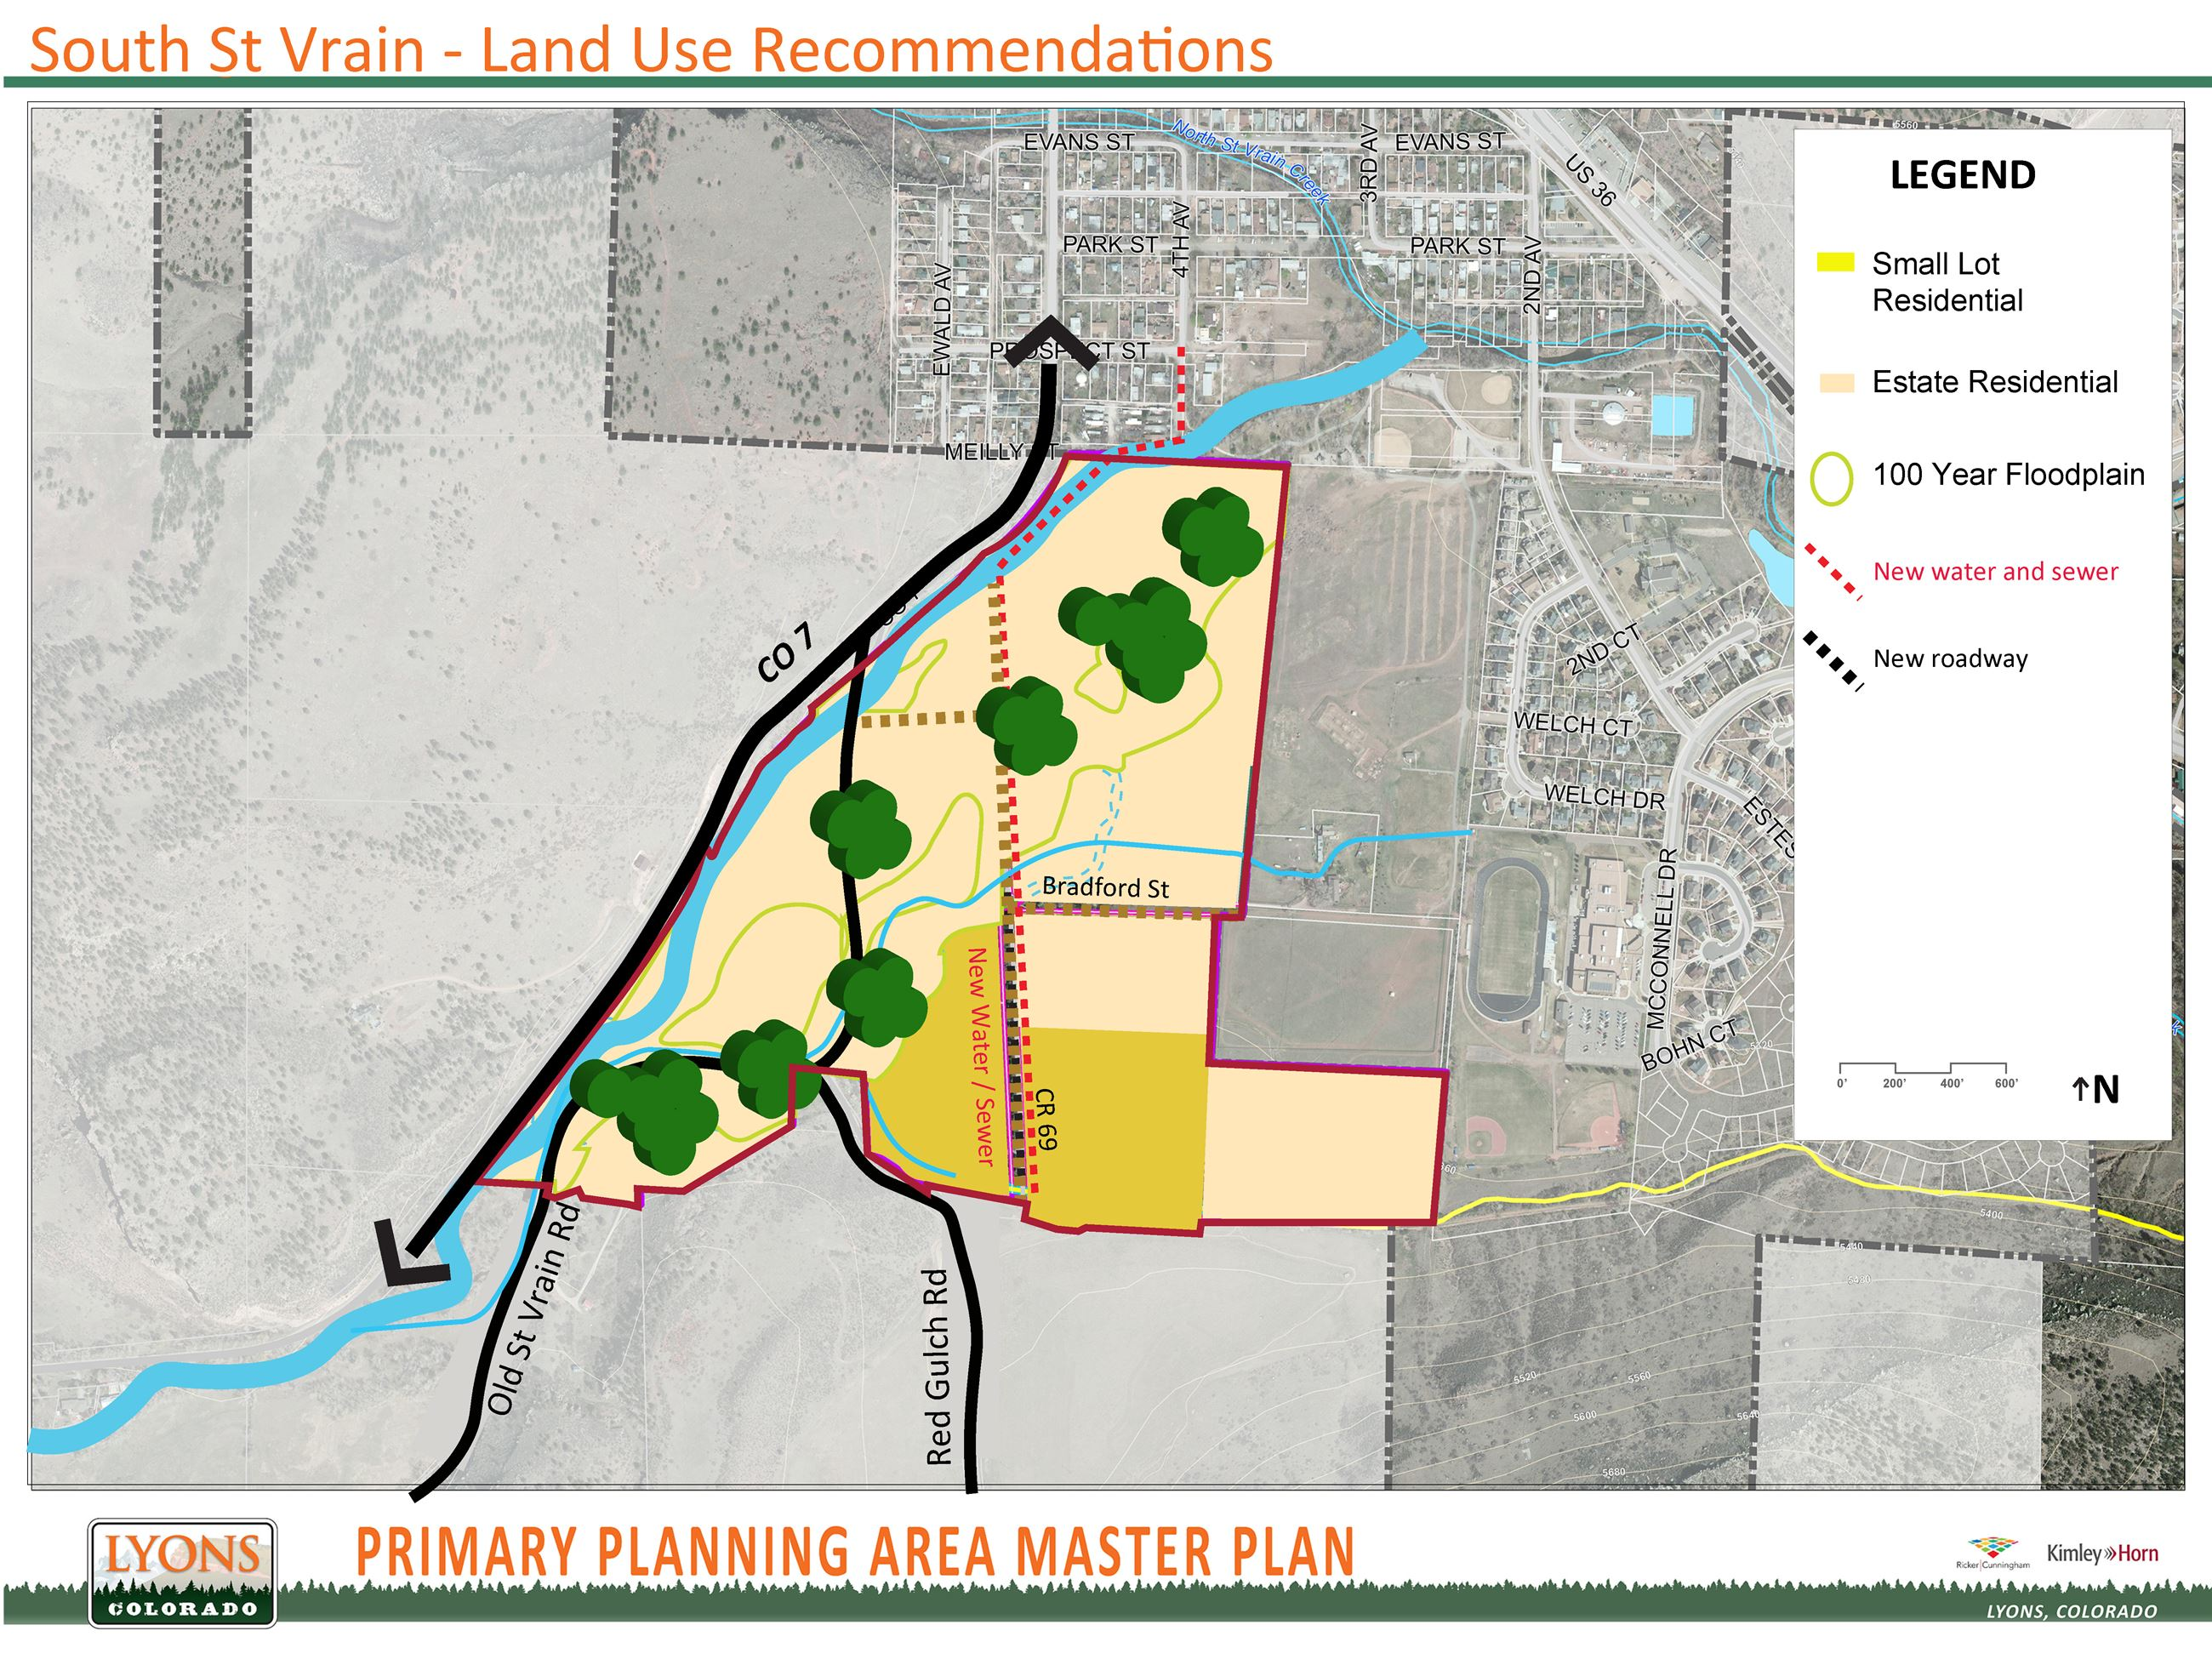 SV Land Use Recommendations